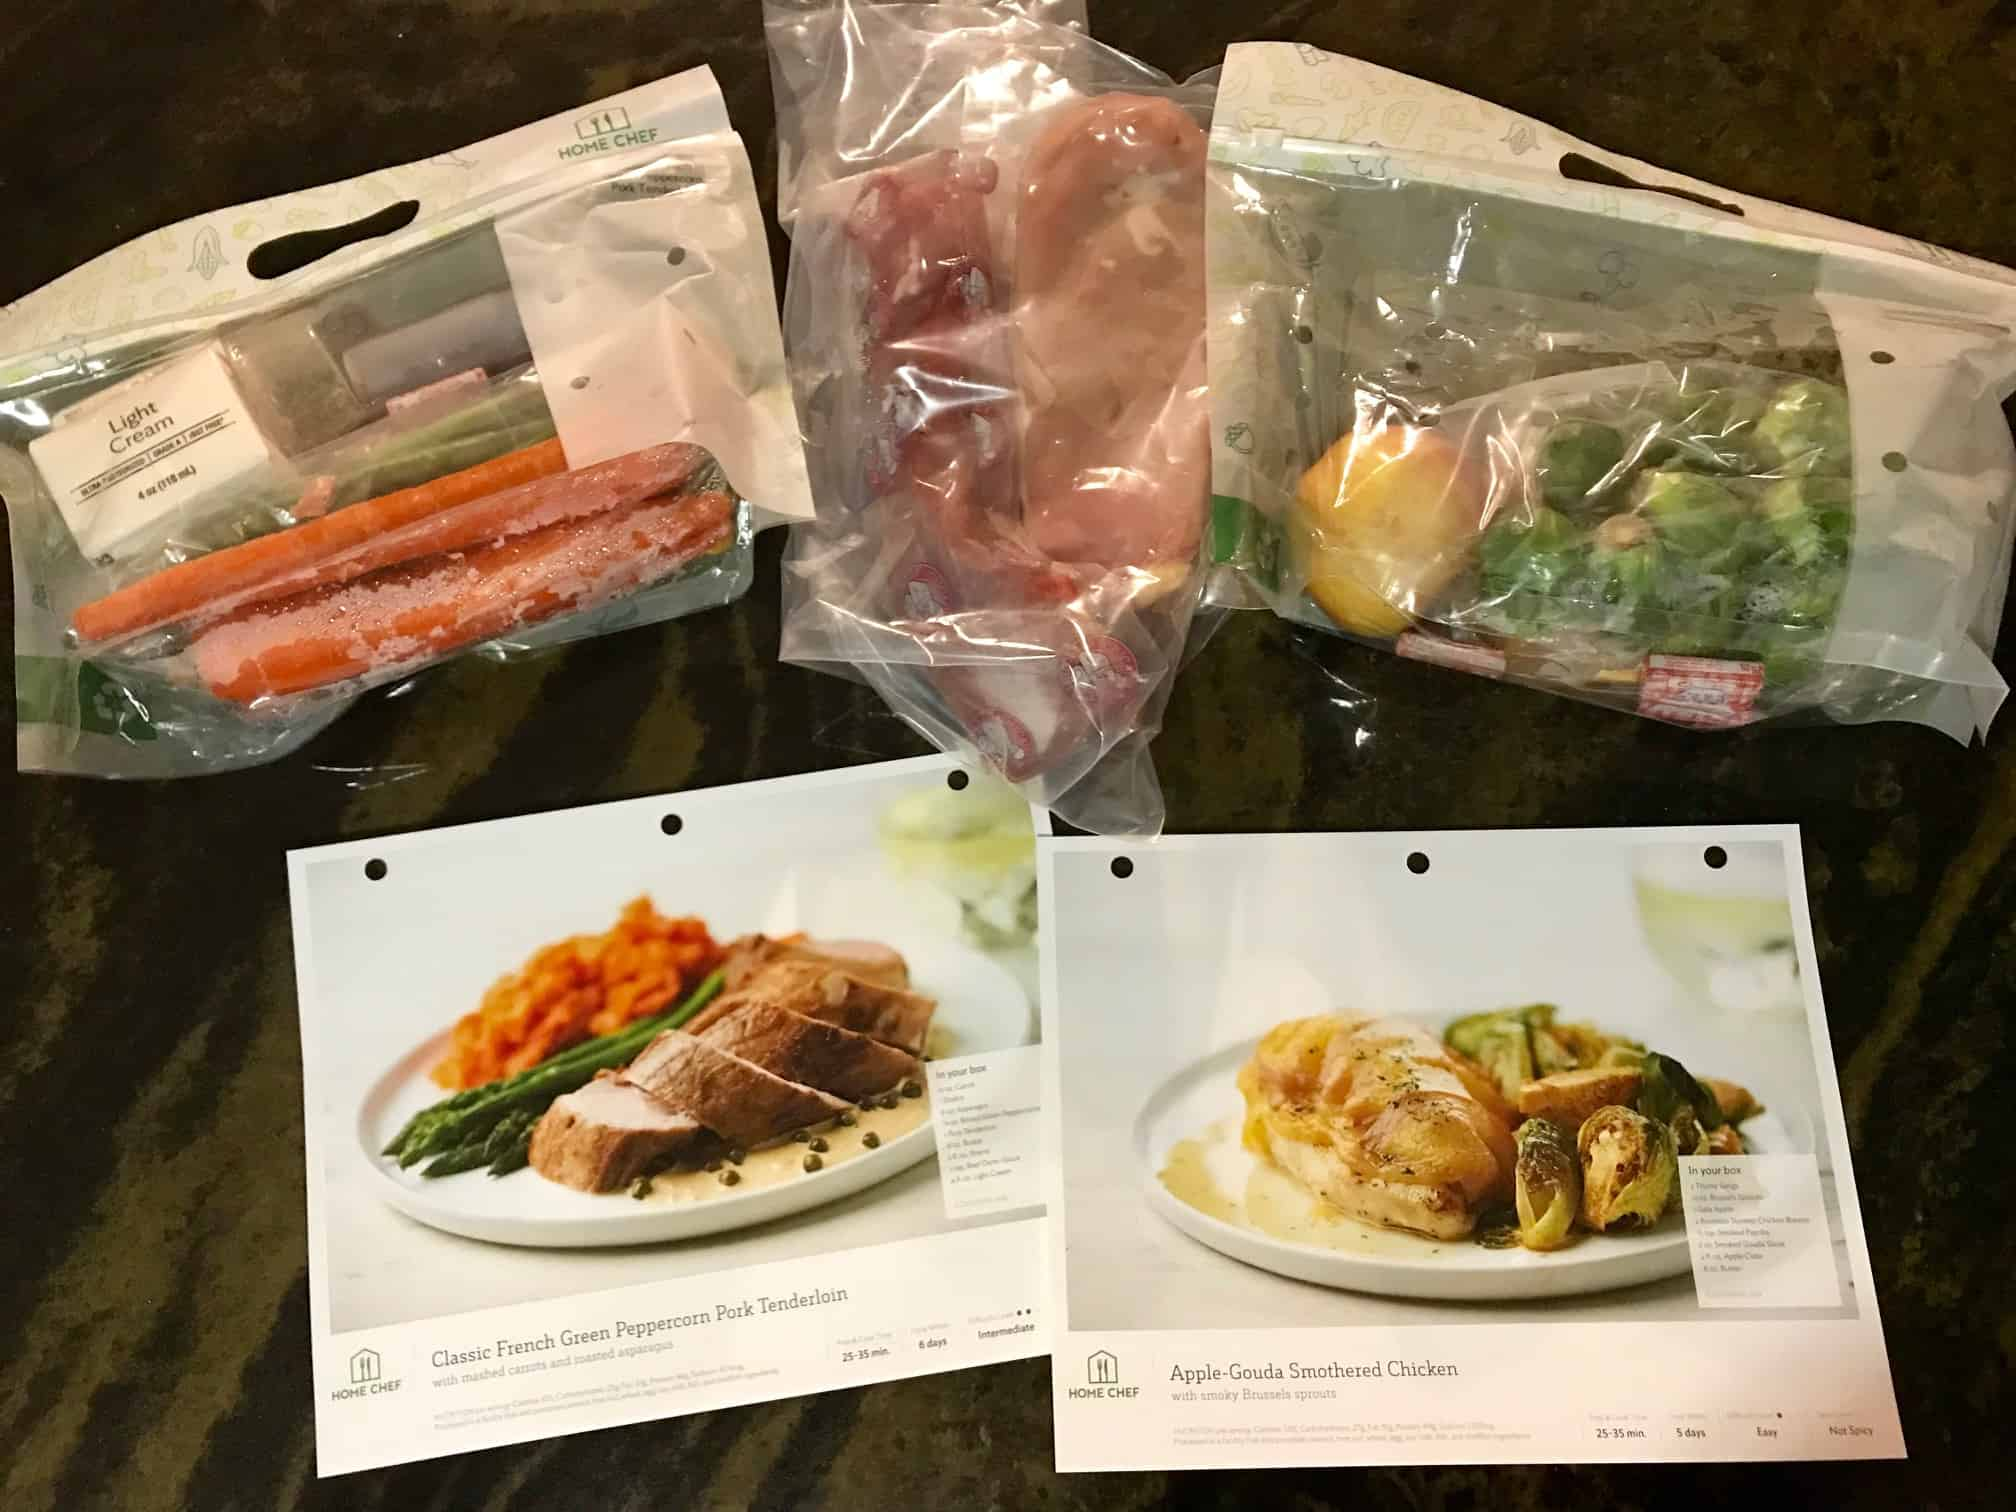 Home Chef Meals in bags with recipe cards in front